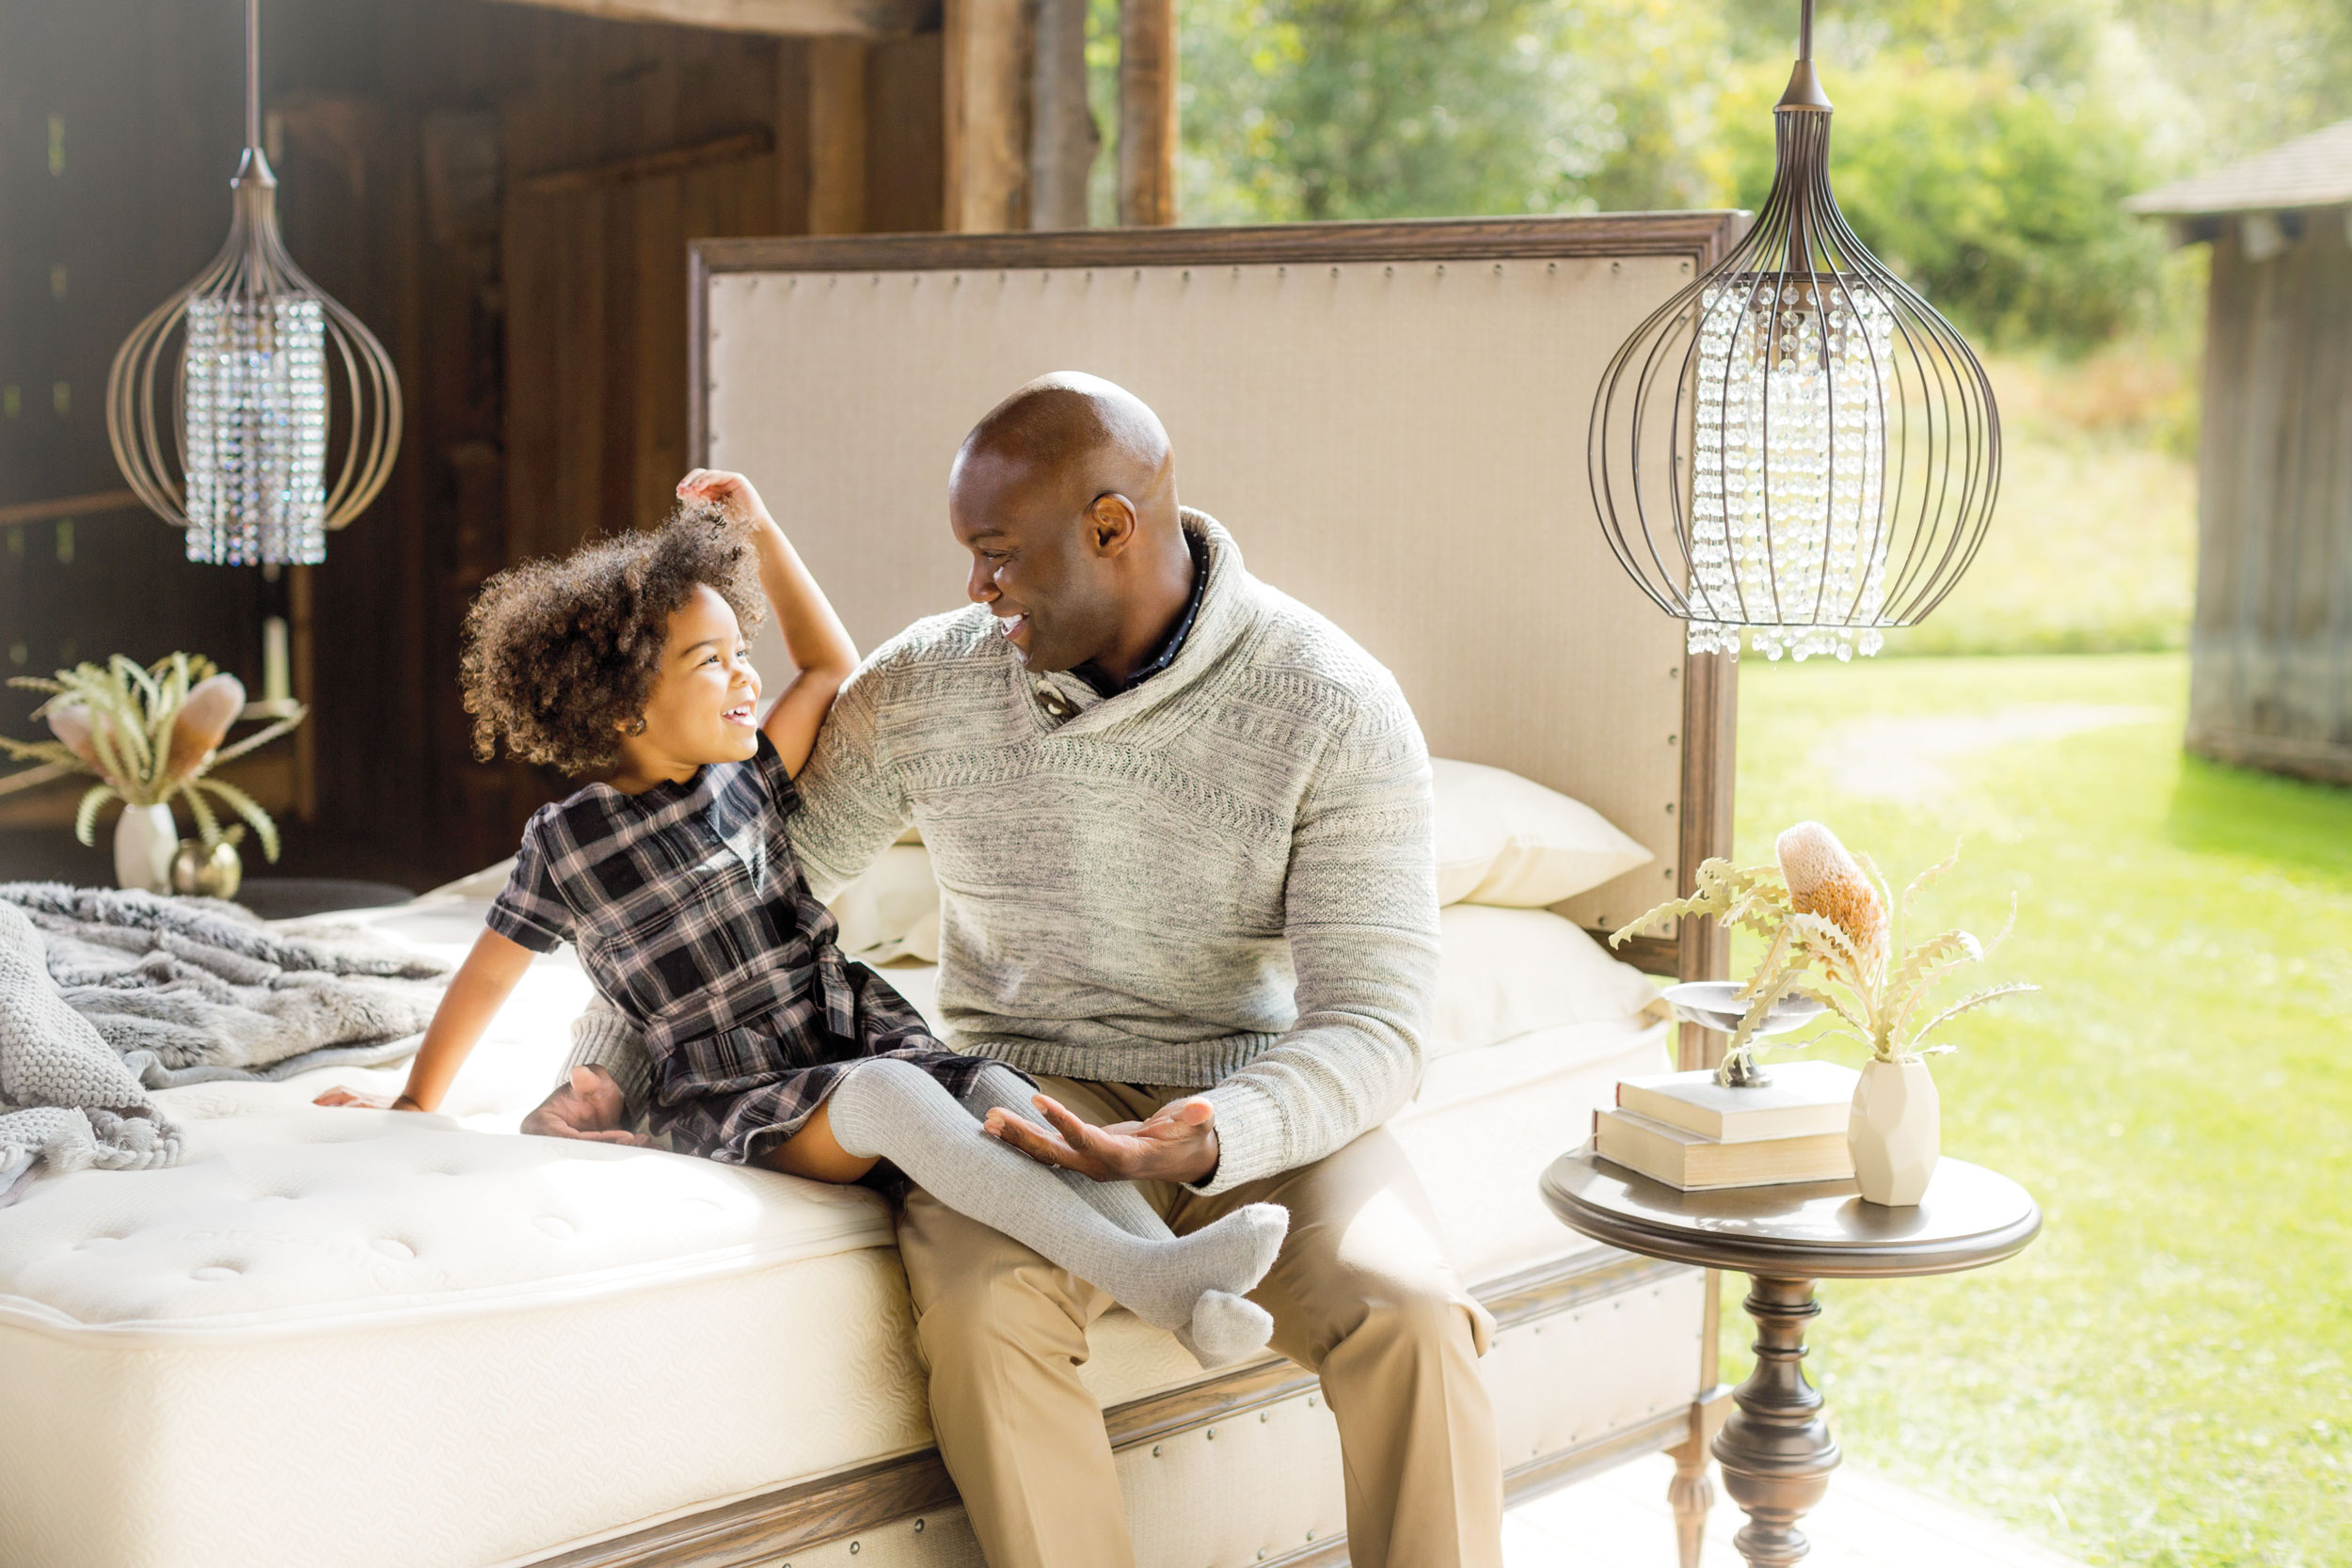 professional commercial photography of father and daughter on furniture